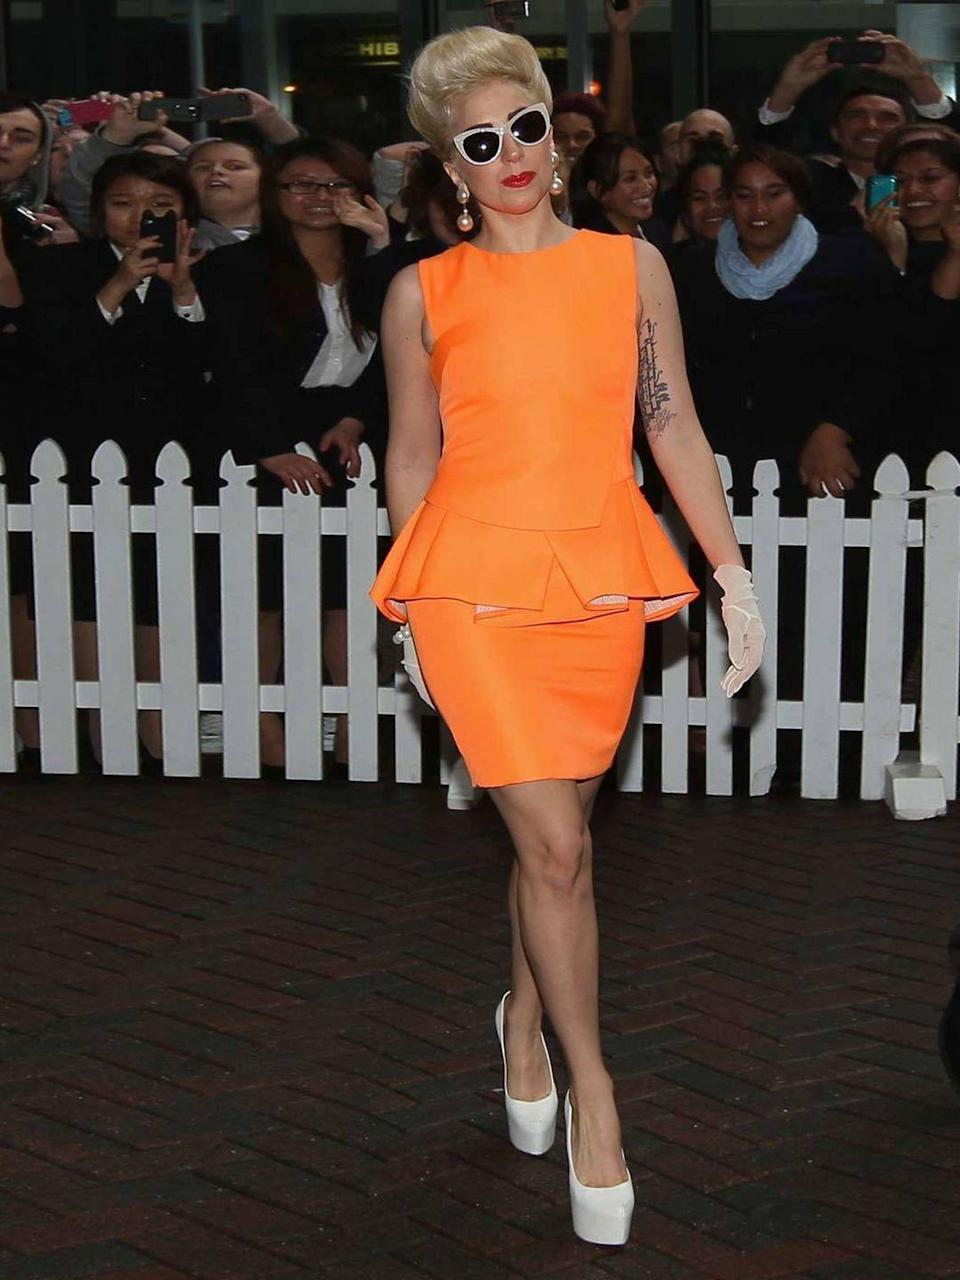 <p>Lady Gaga arrives at the Stamford Plaza wearing an orange peplum dress paired with white heels, June 2012.</p>